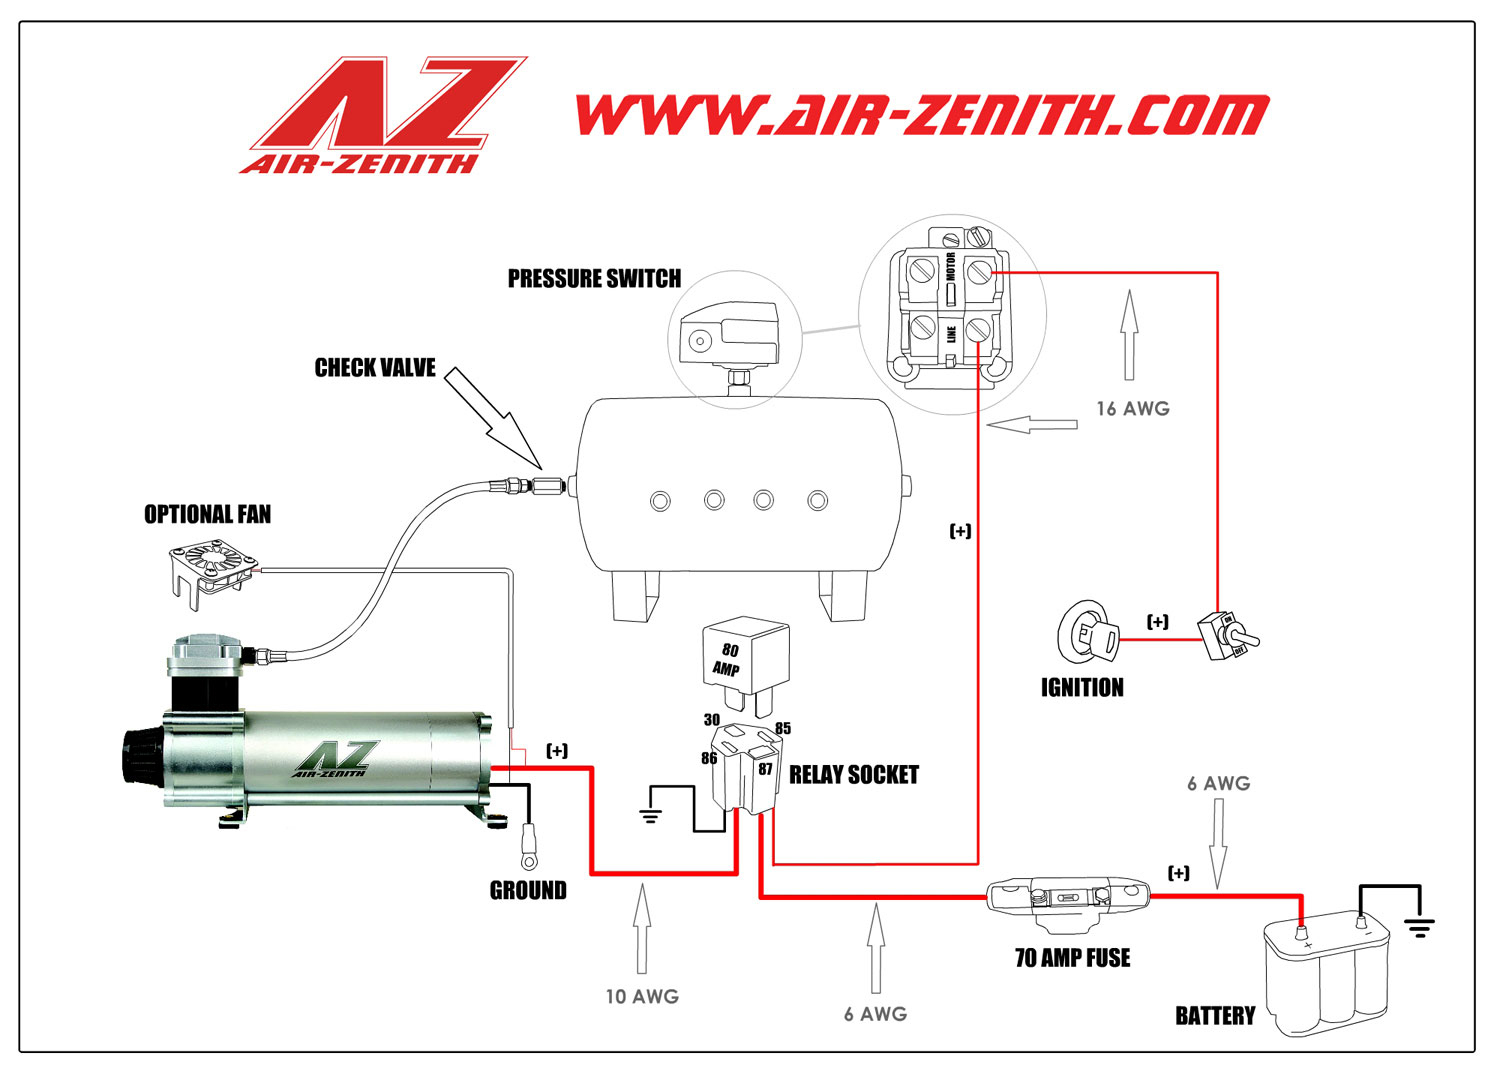 50 Amp 240v Schematic Wiring Manual Guide